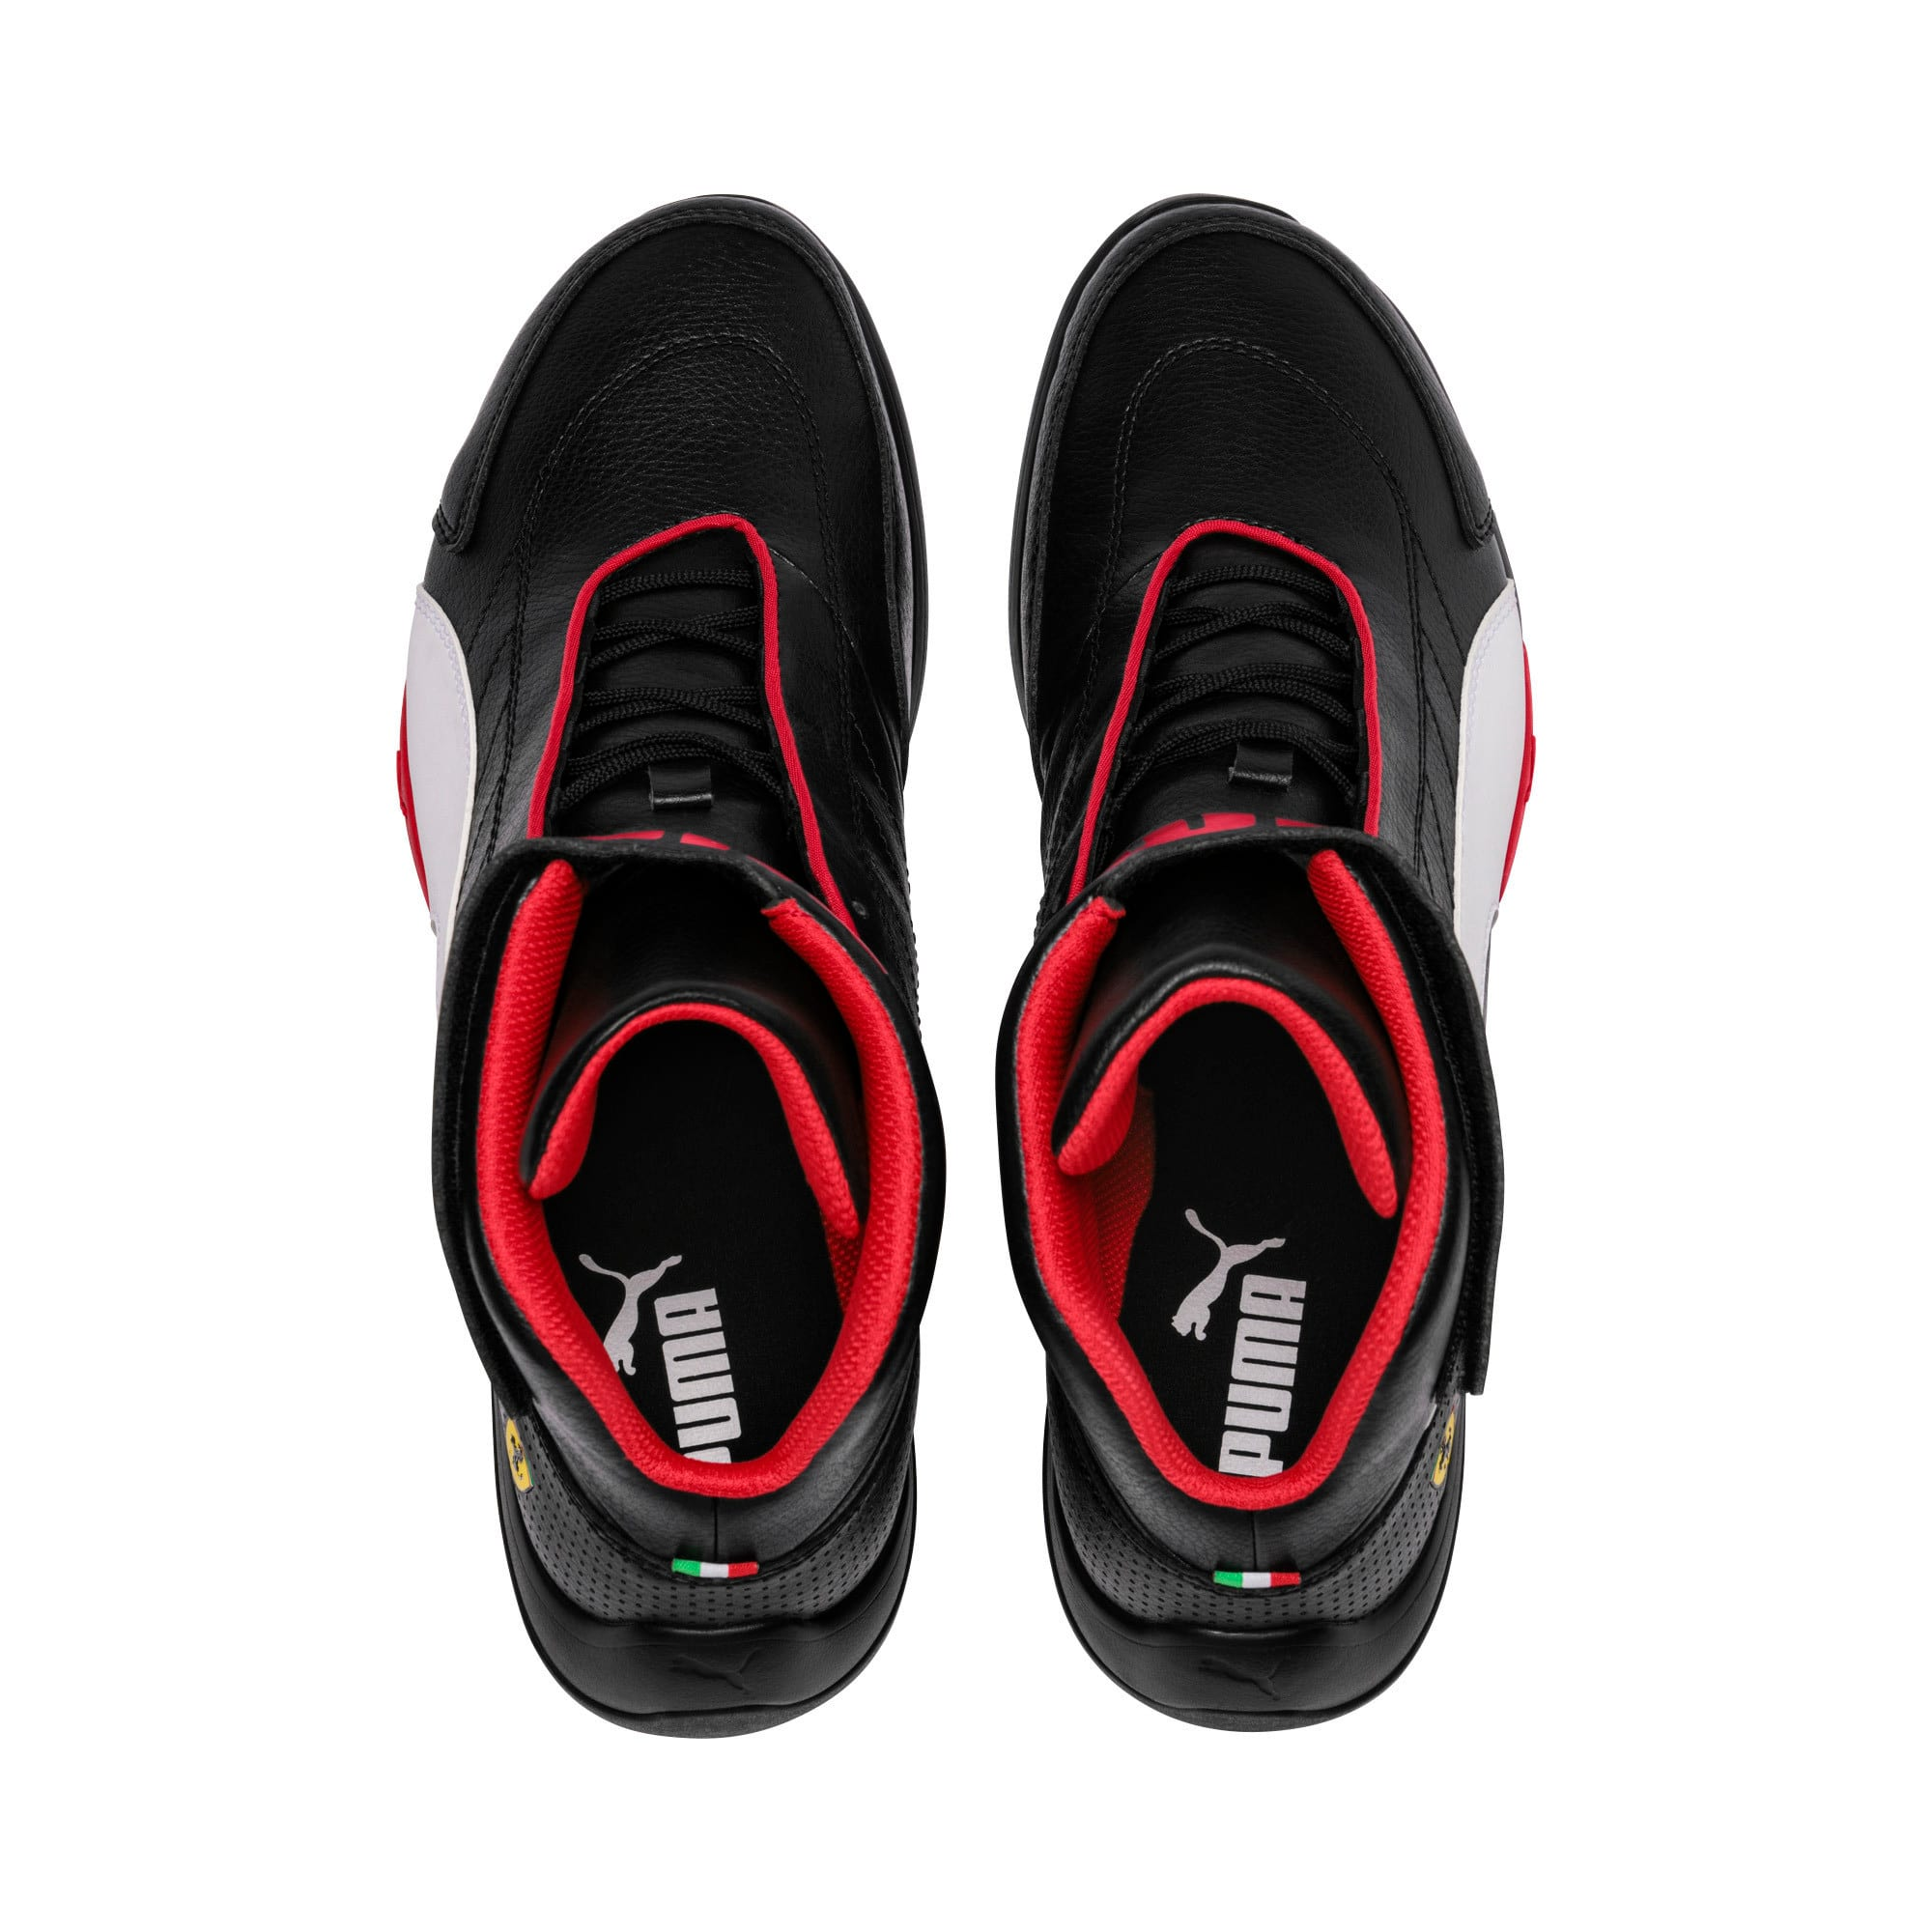 Thumbnail 6 of Scuderia Ferrari Kart Cat Mid III Hi Top Shoes, Puma Black-Puma White, medium